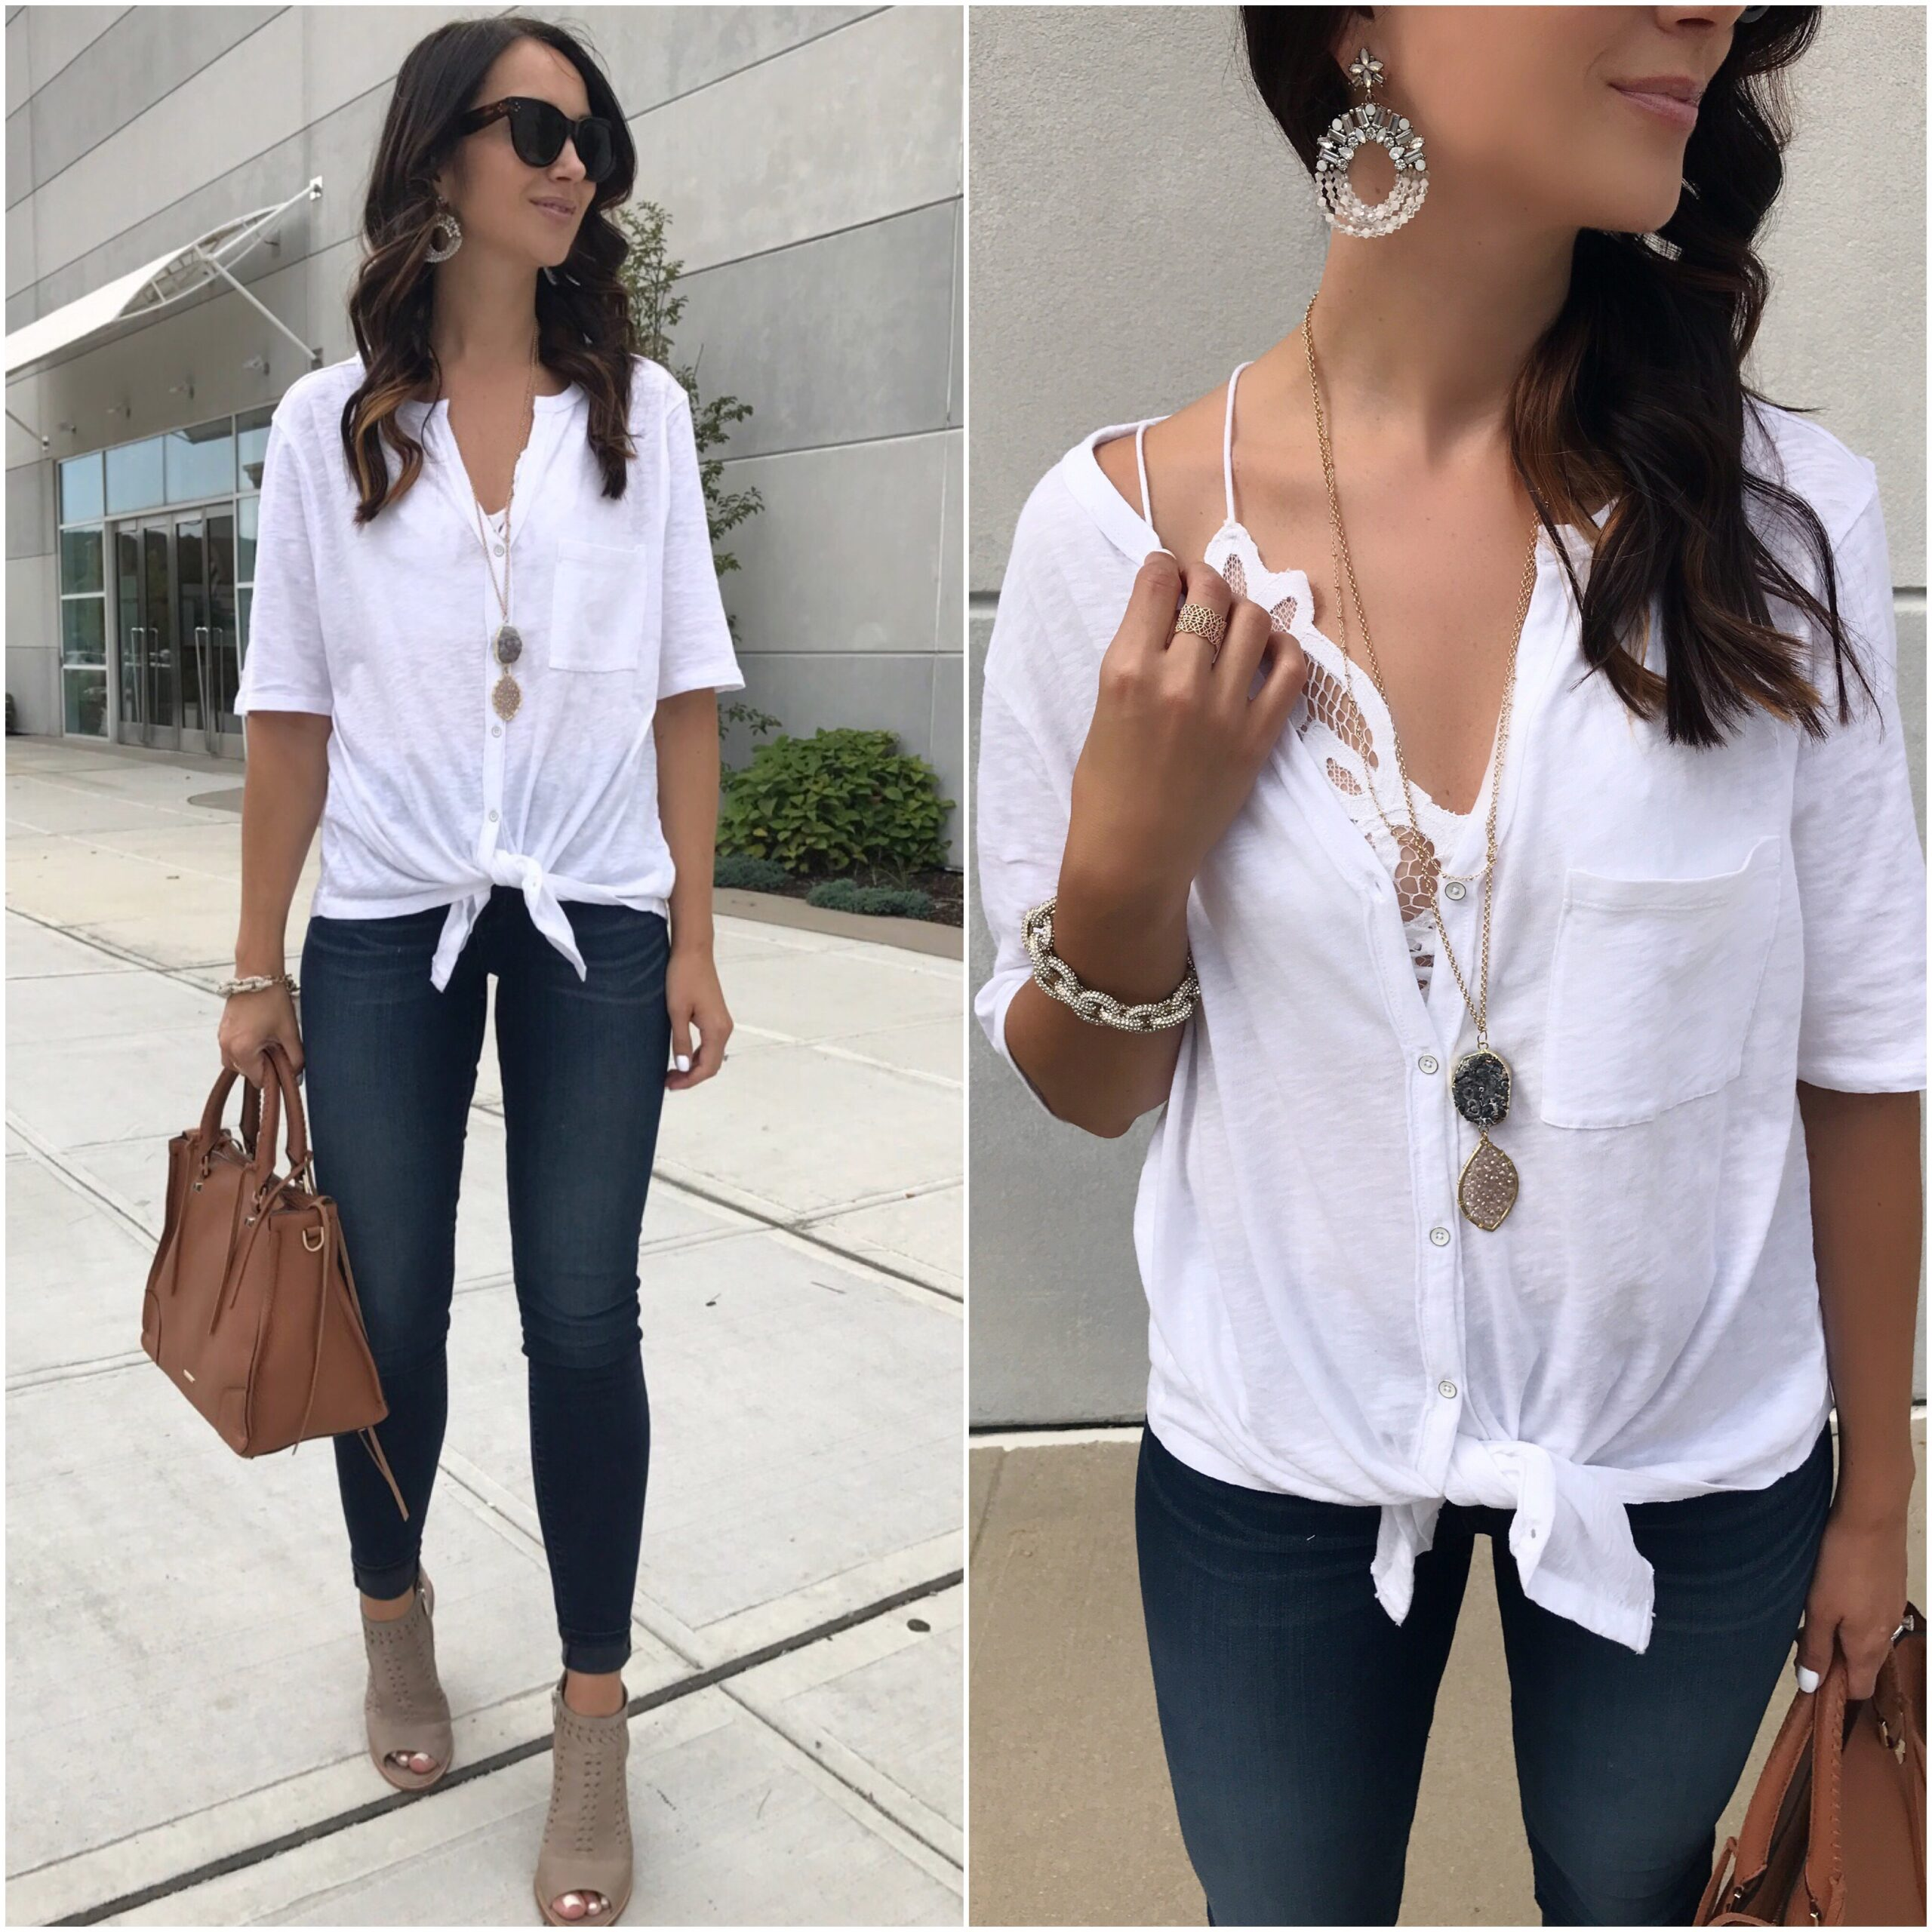 fashion blogger Anna Monteiro wearing caslon tee panacea jewelry rebecca minkoff regan satchel from nordstrom in summer to fall outfits